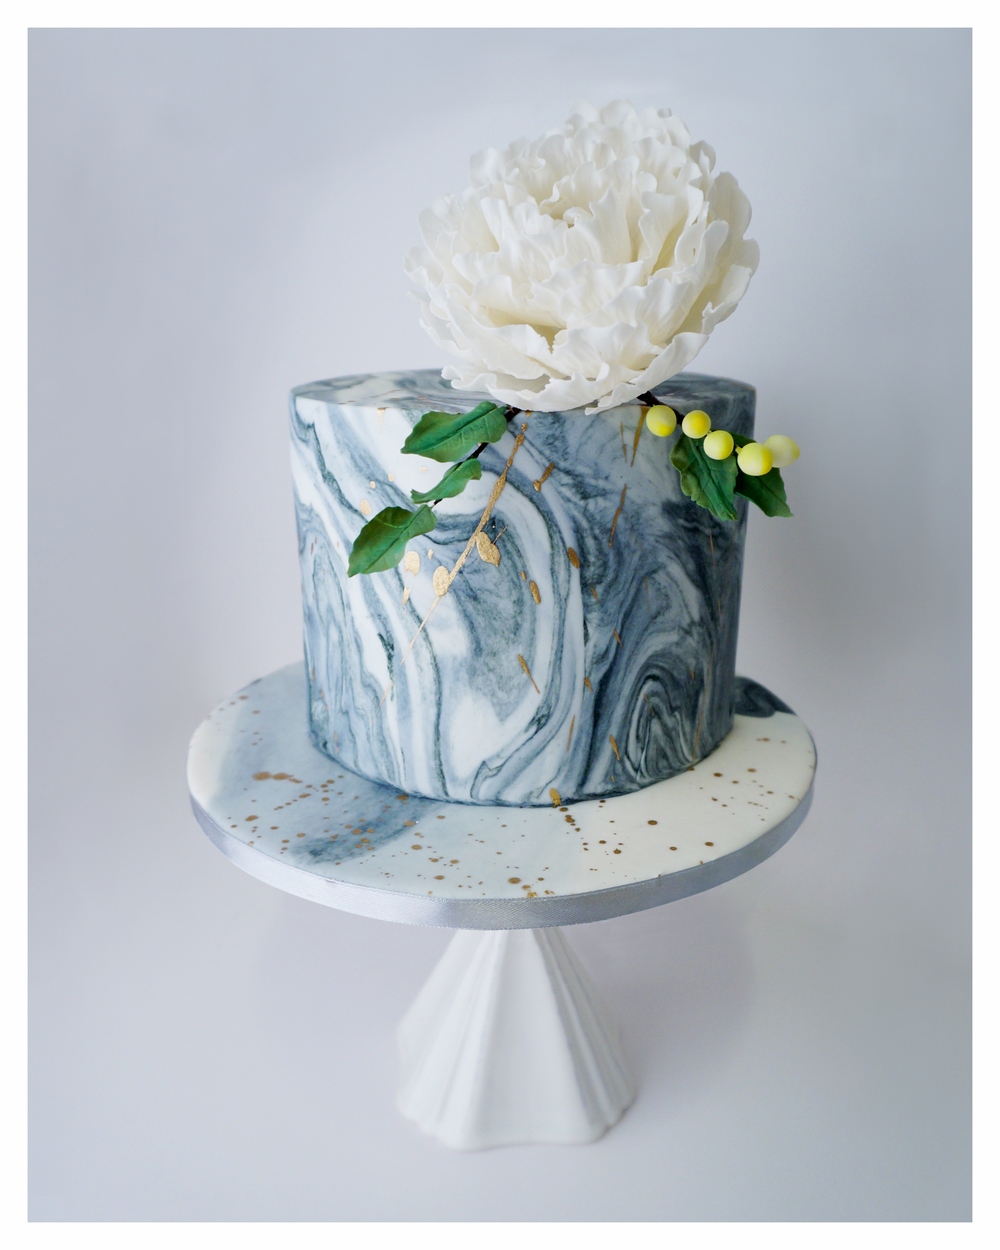 Marble Cake with flower 2.jpg